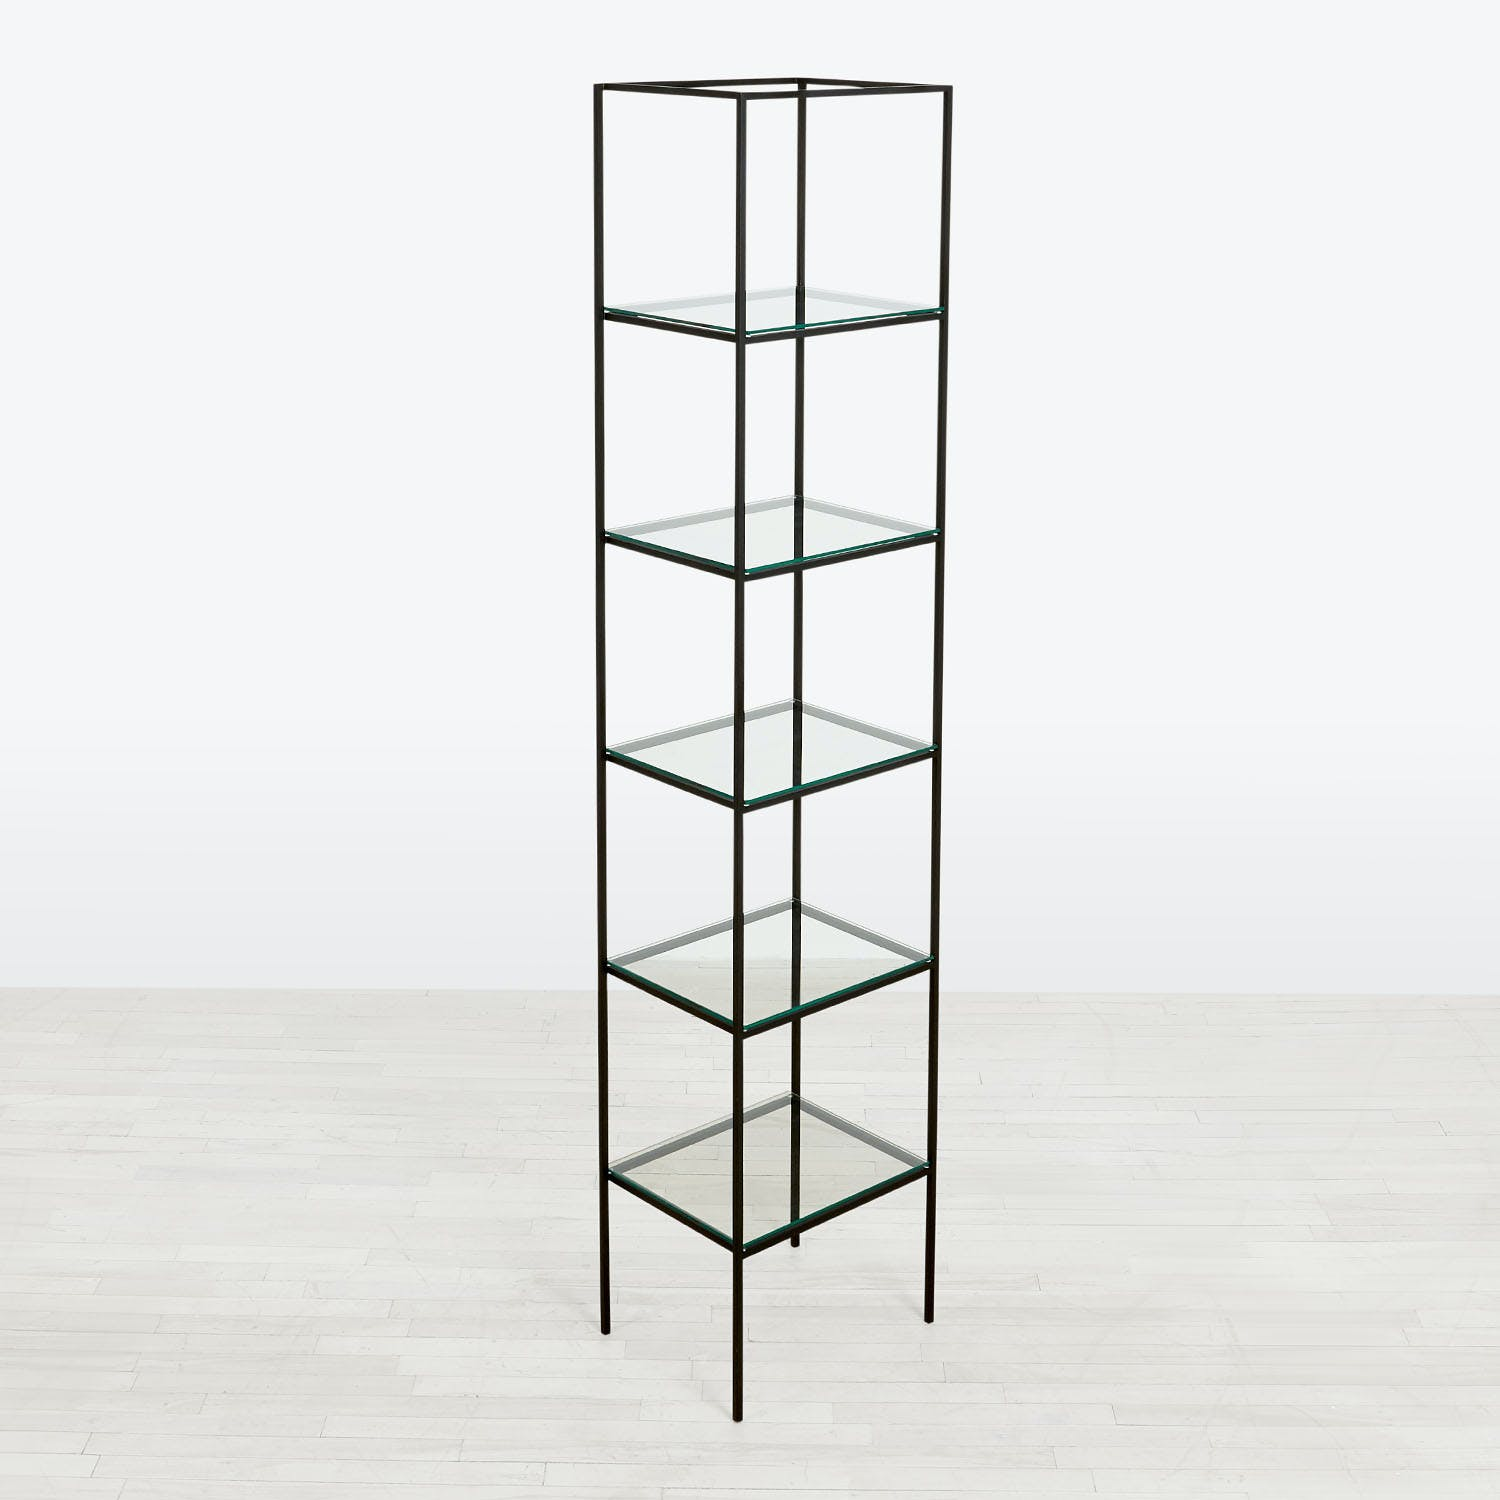 abcDNA Synthesis Glass 6-Tier Narrow Shelving